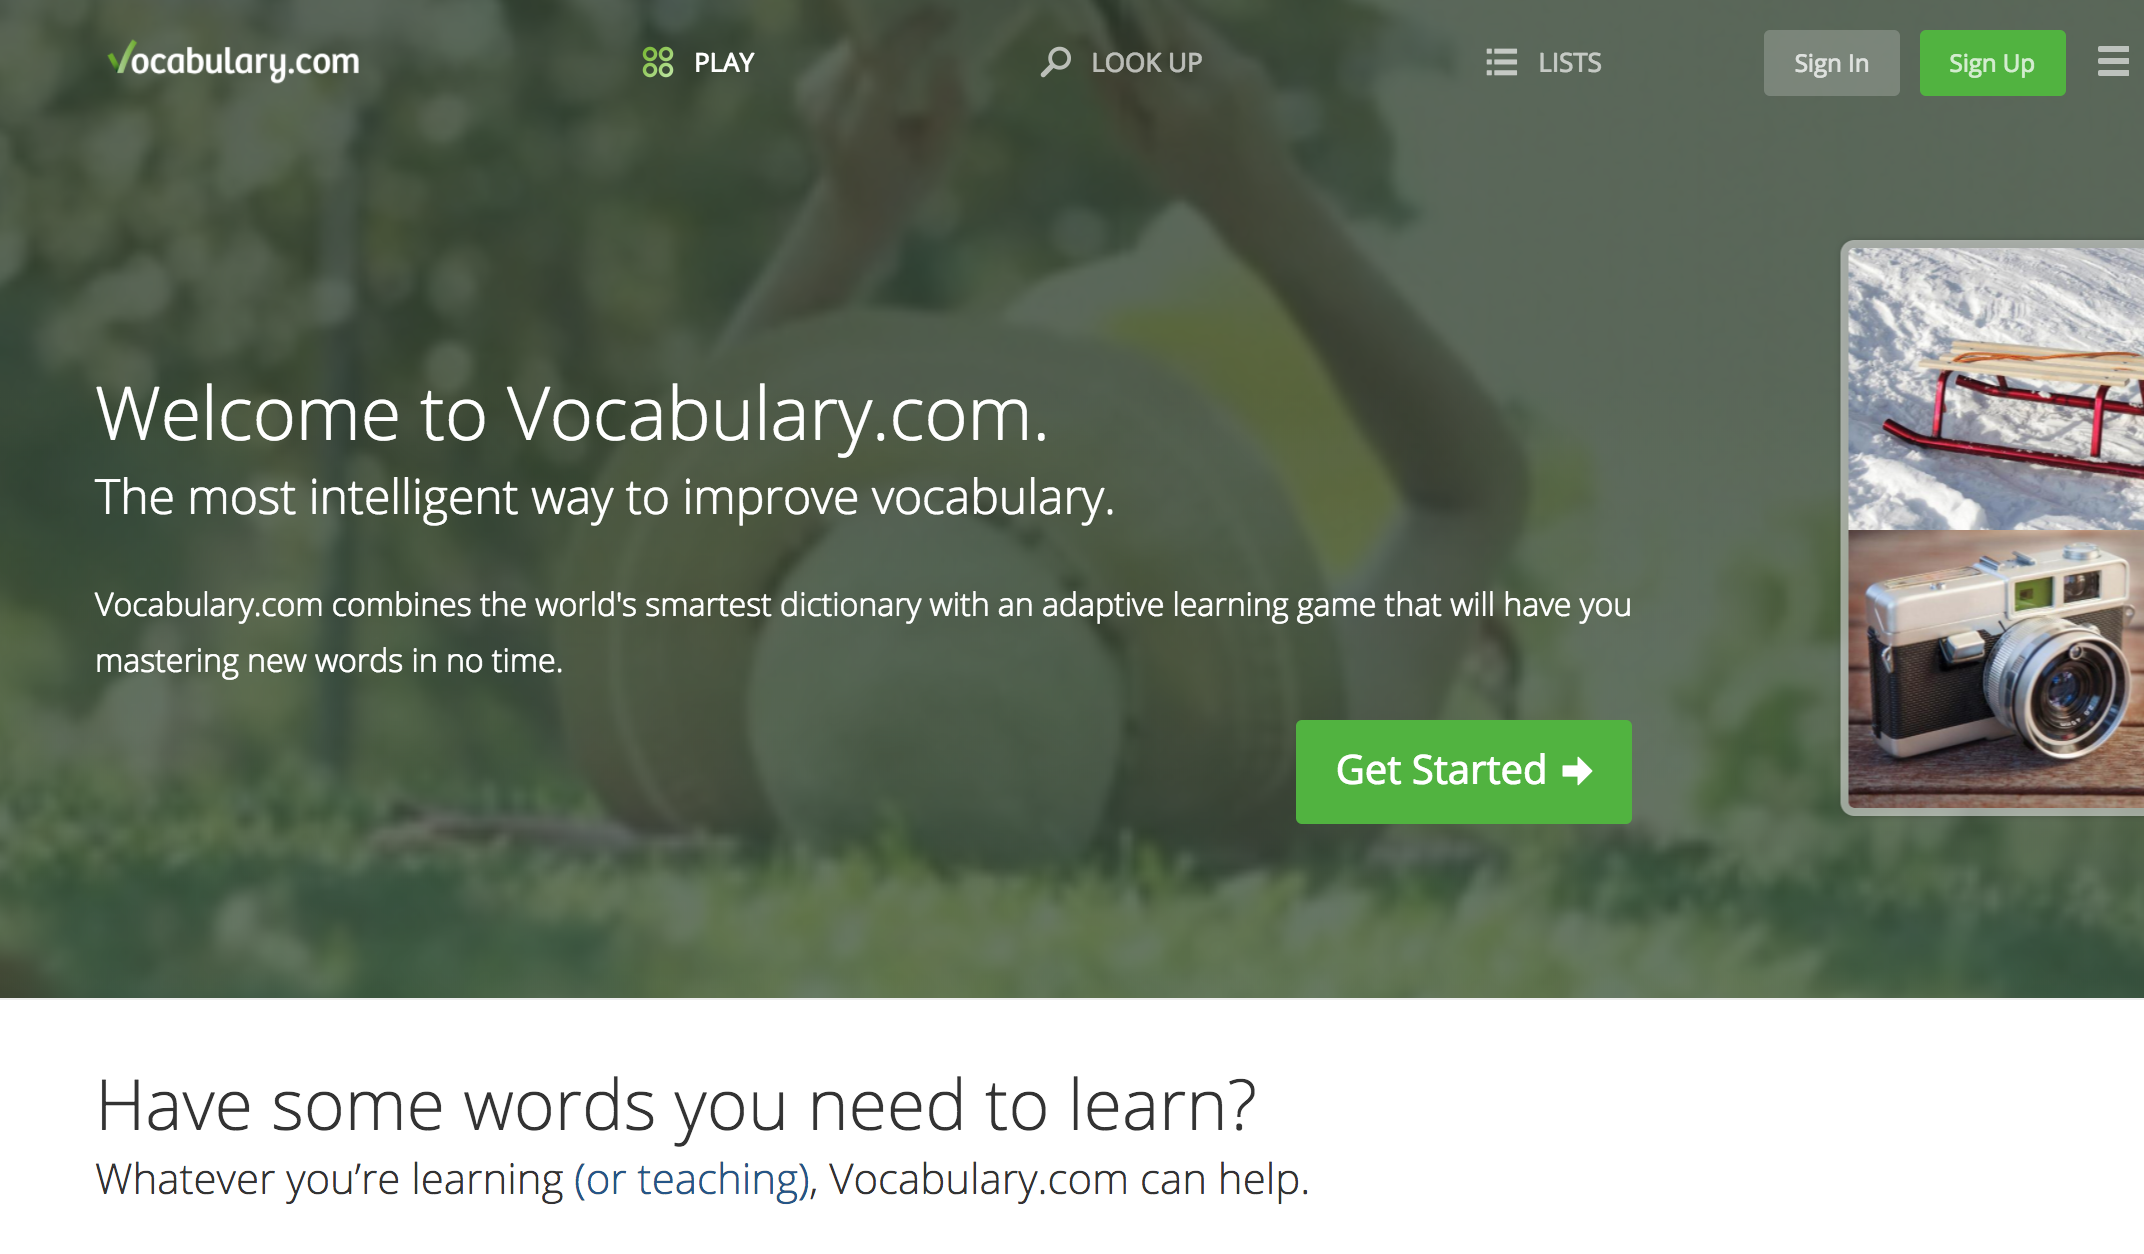 Vocabulary.com - I had been a devotee of Cram and Quizlet and overlooked Vocabulary.com as a studying tool until a coworker showed me the extensive lists that are user generated, as well as how students can level-up over time. I have much less experience with this website, but I am excited about the design and user interface.